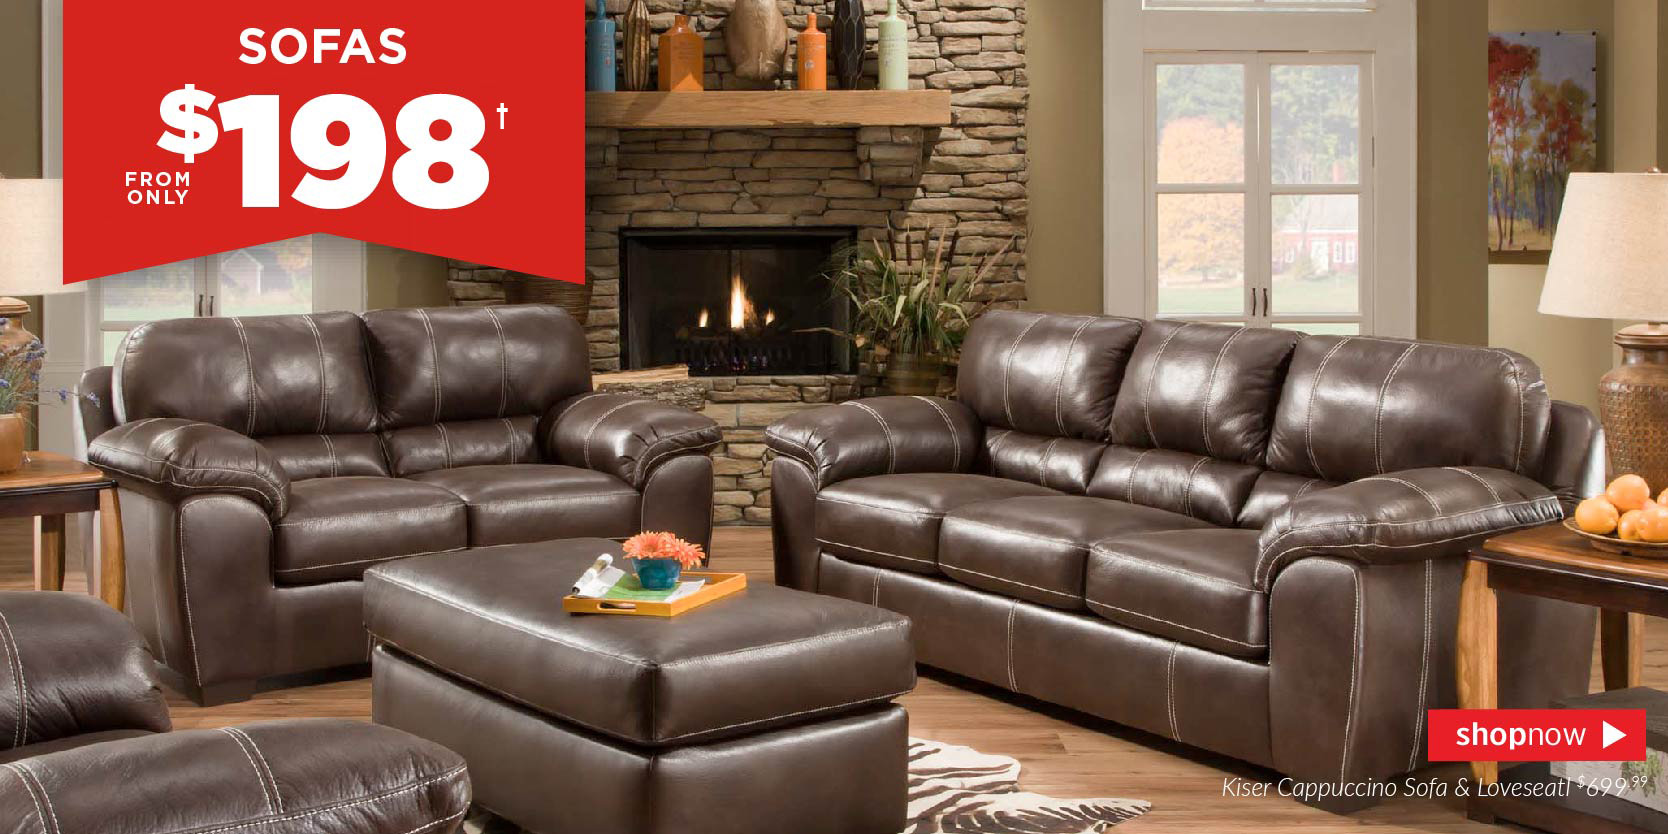 Sofa from $198!